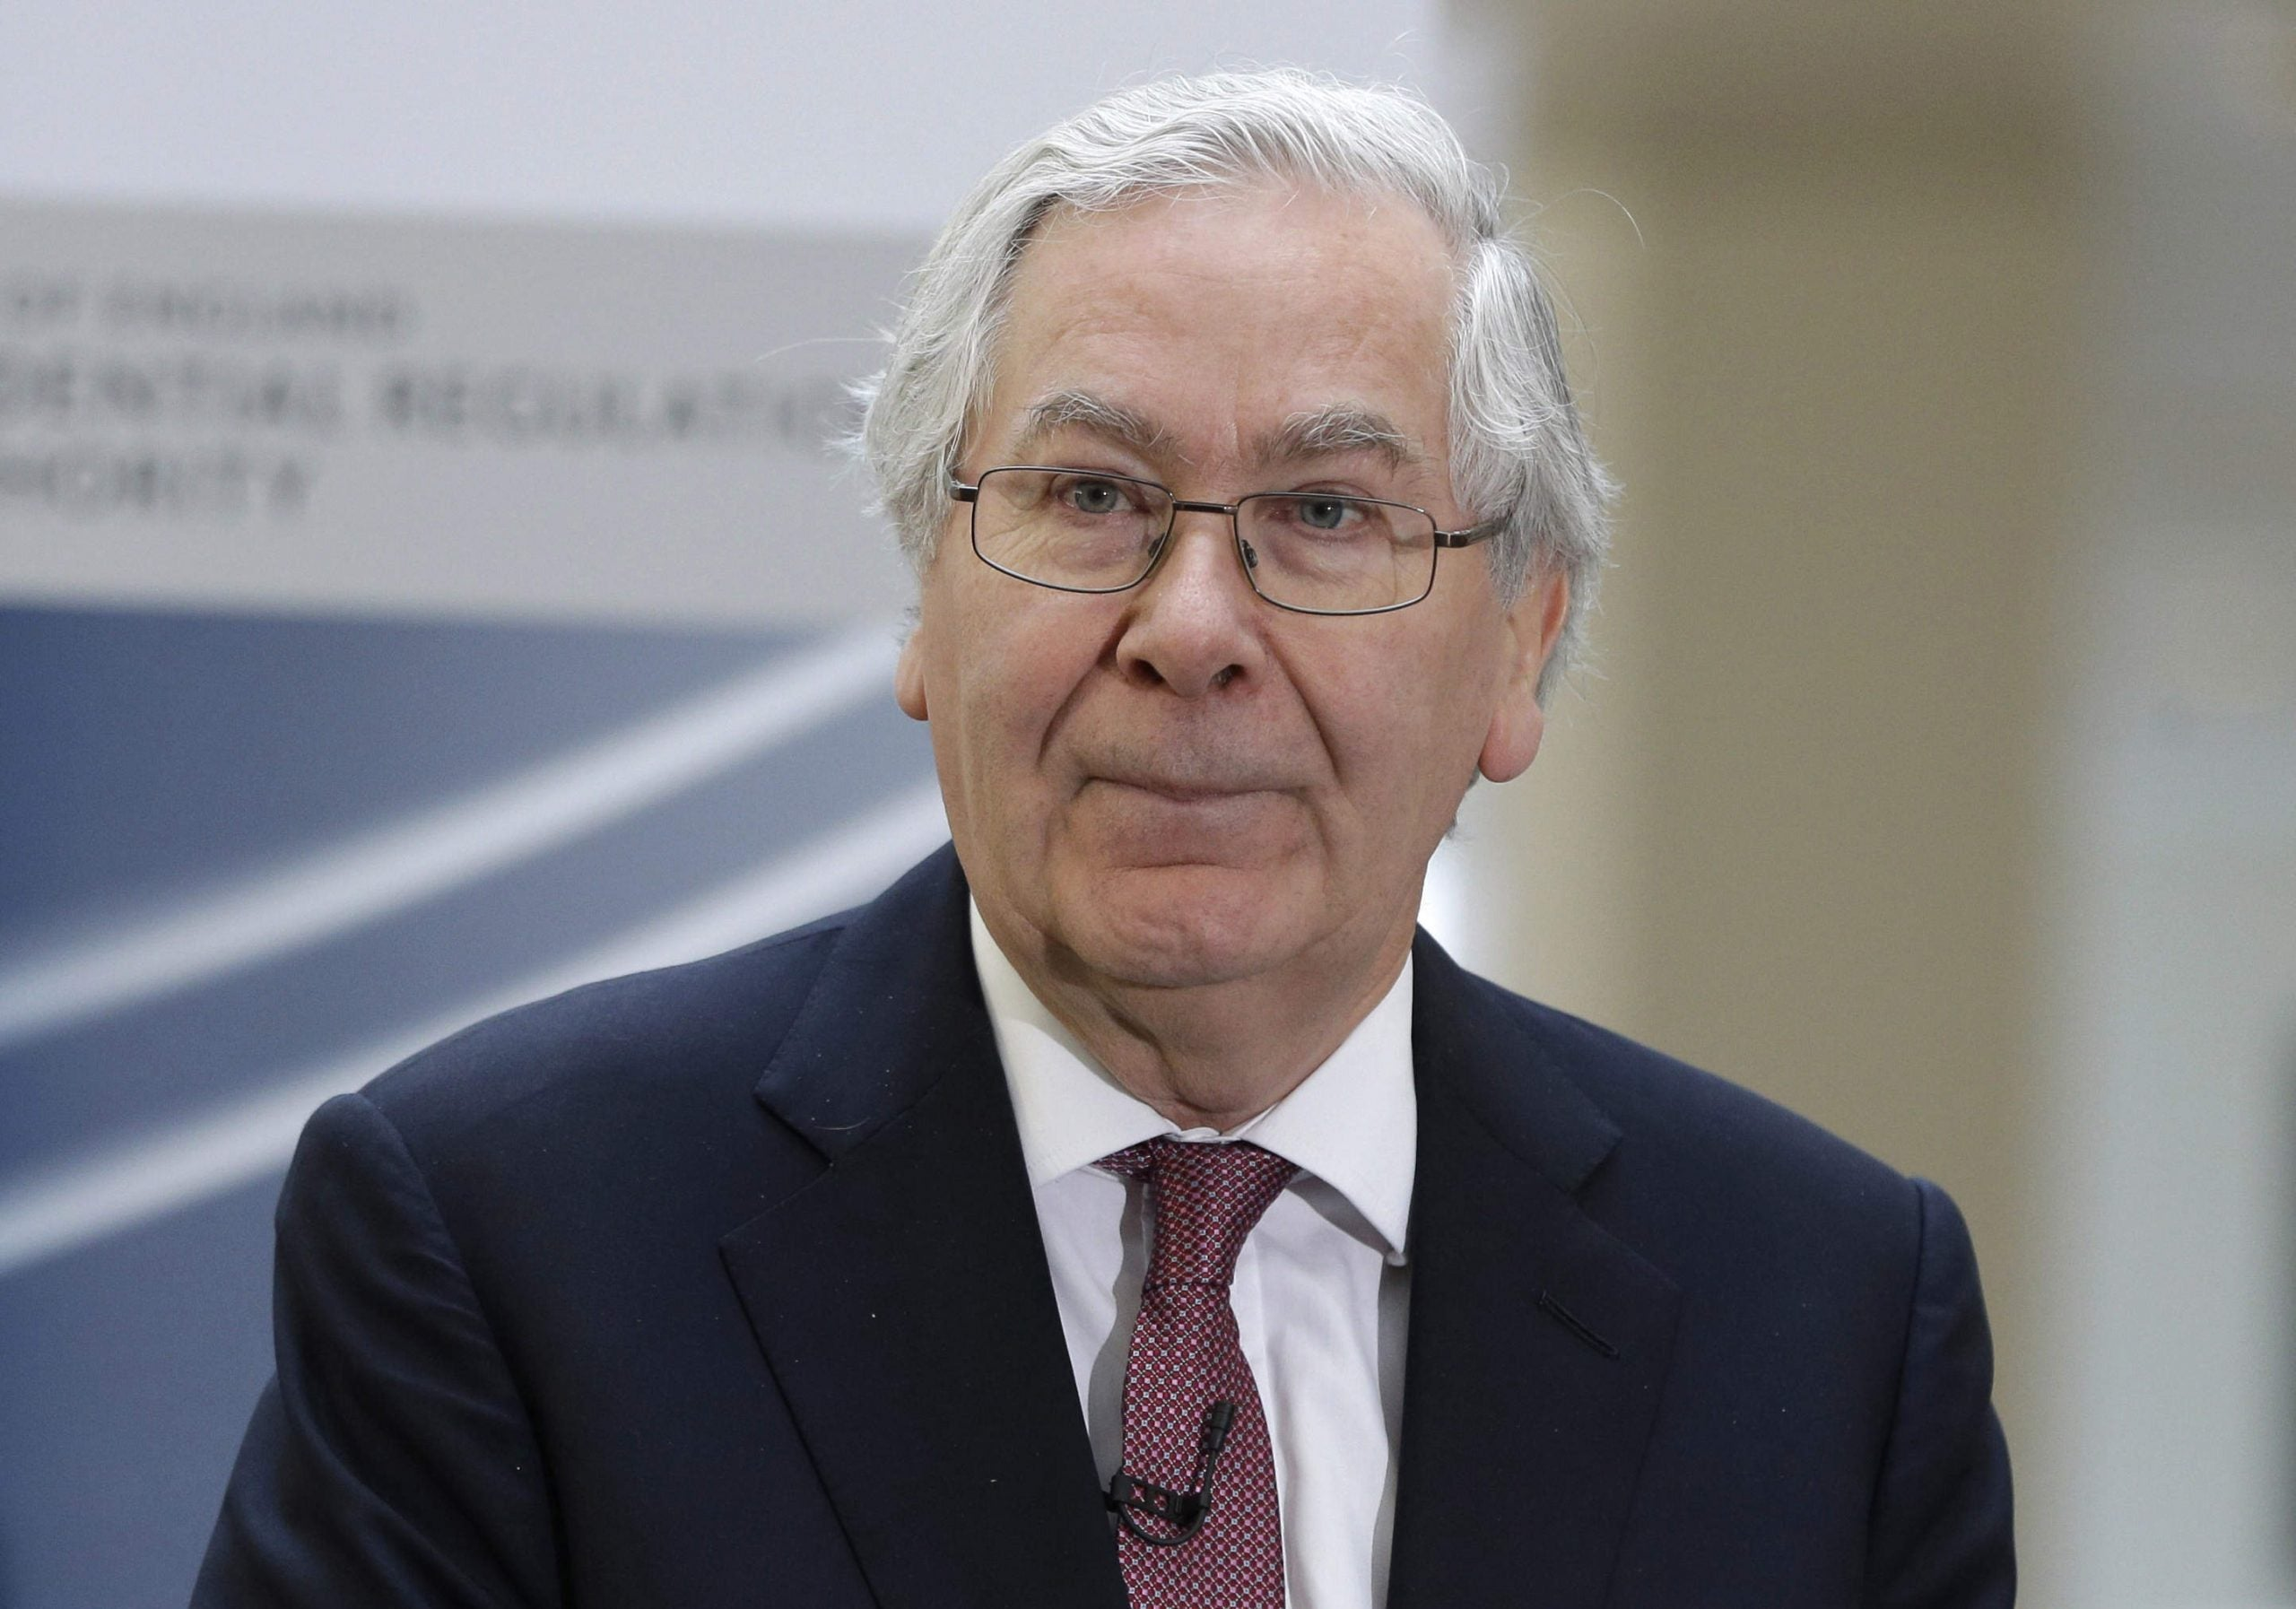 What we can learn from the economic theories of a former Bank of England governer